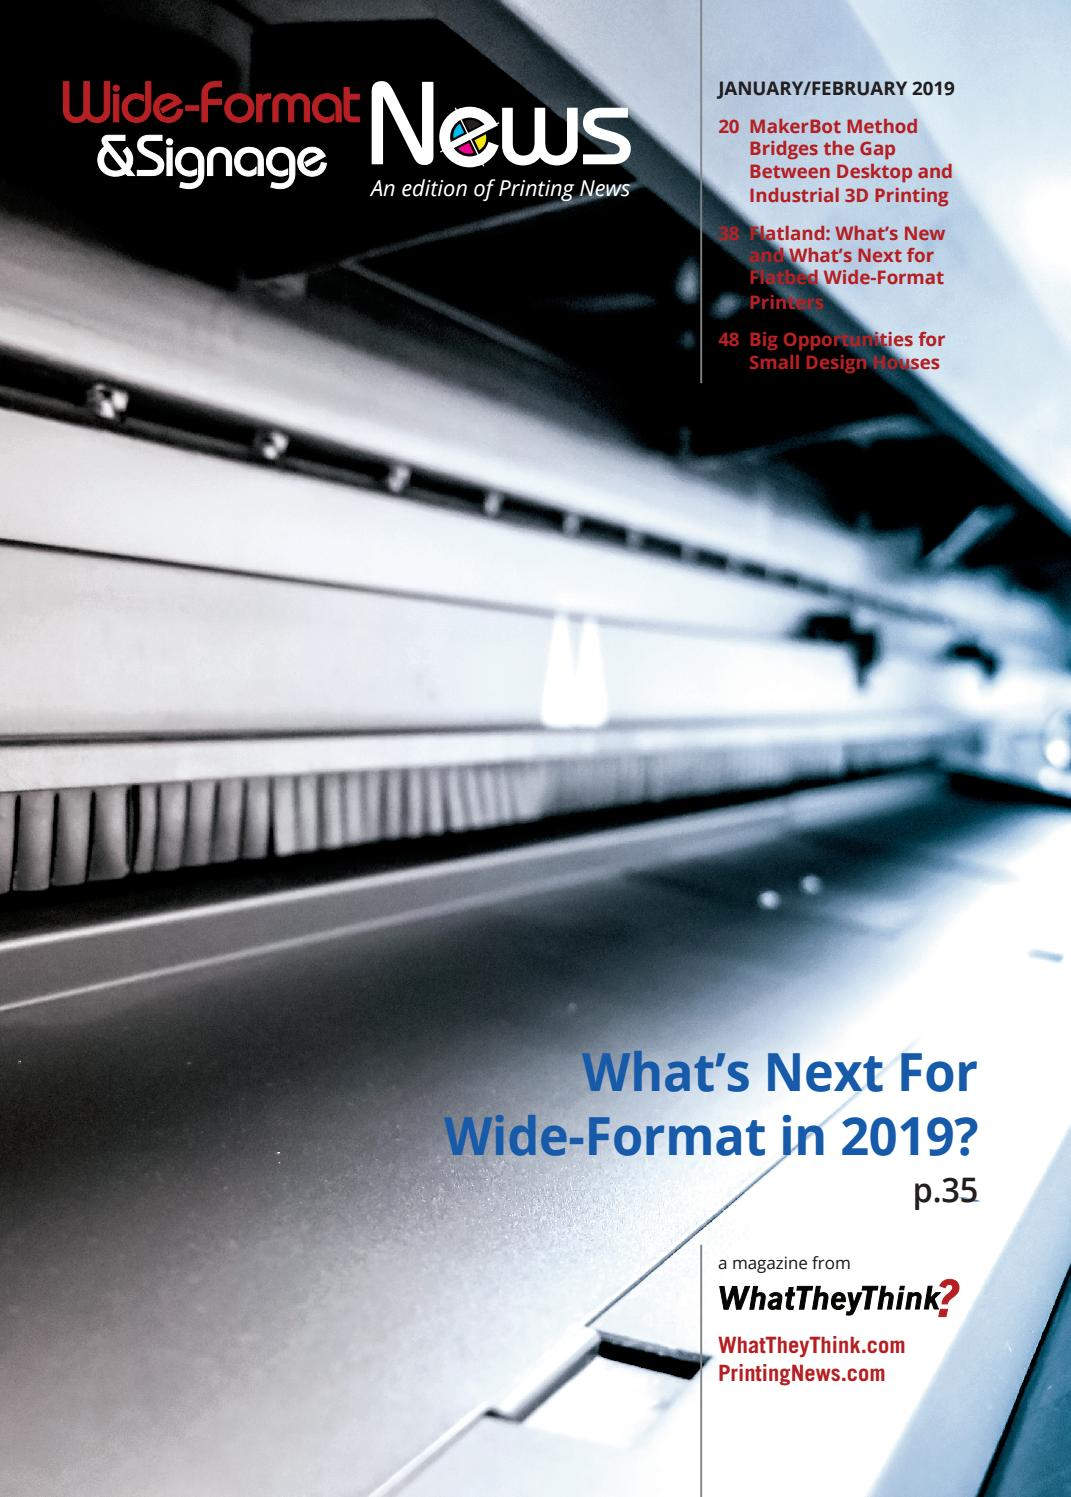 Wide-Format & Signage News - January 2019 by WhatTheyThink - issuu